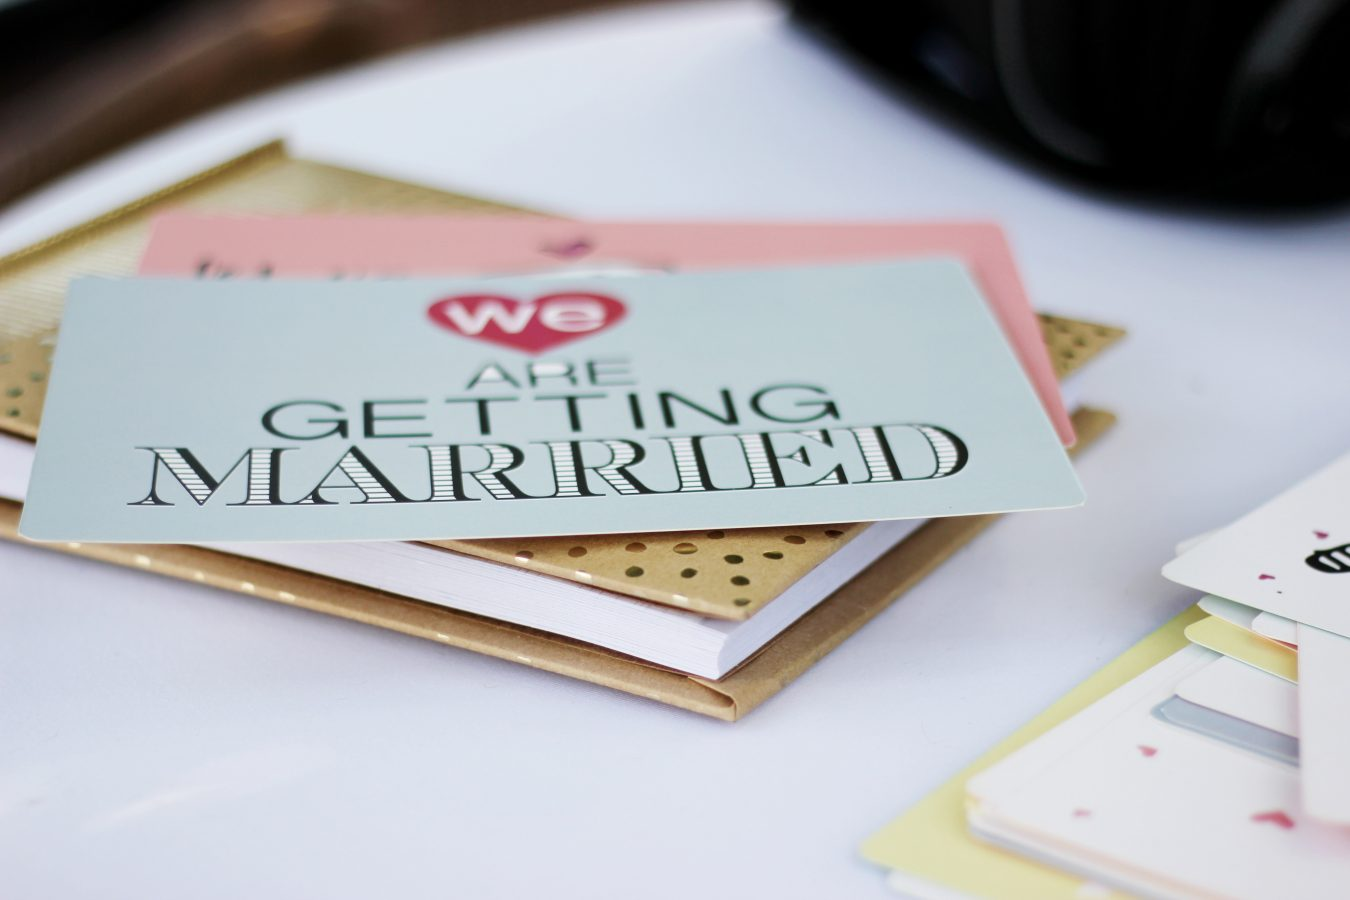 We Are Getting Married stationary